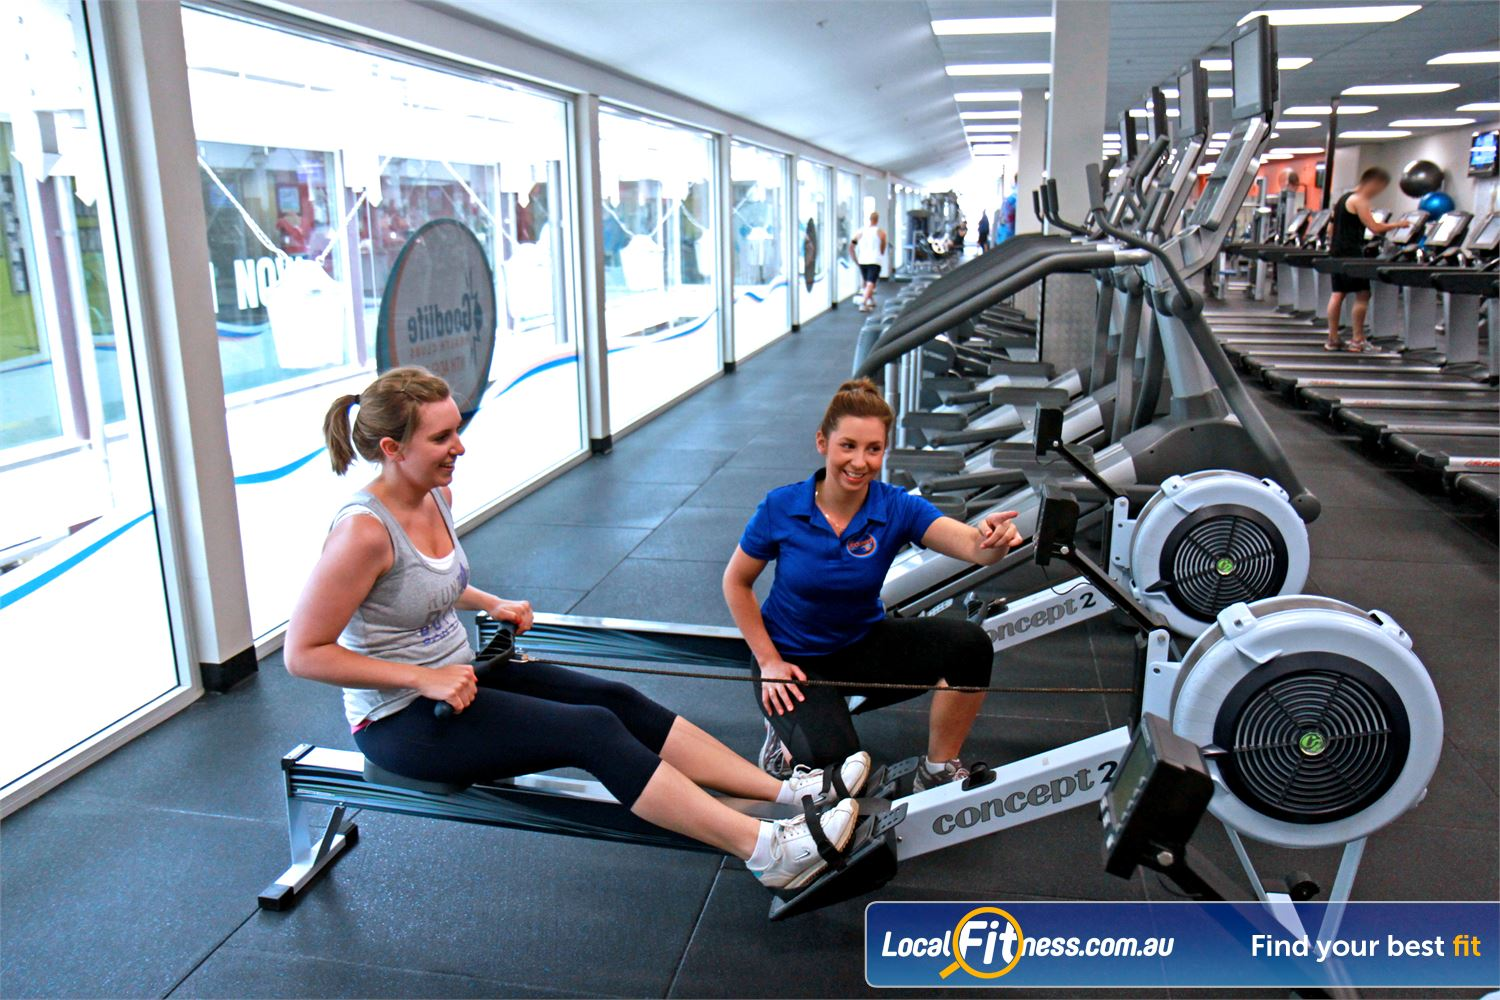 Goodlife Health Clubs North Adelaide Tune into your favourite shows on your personalised LCD screen or cardio theatre.